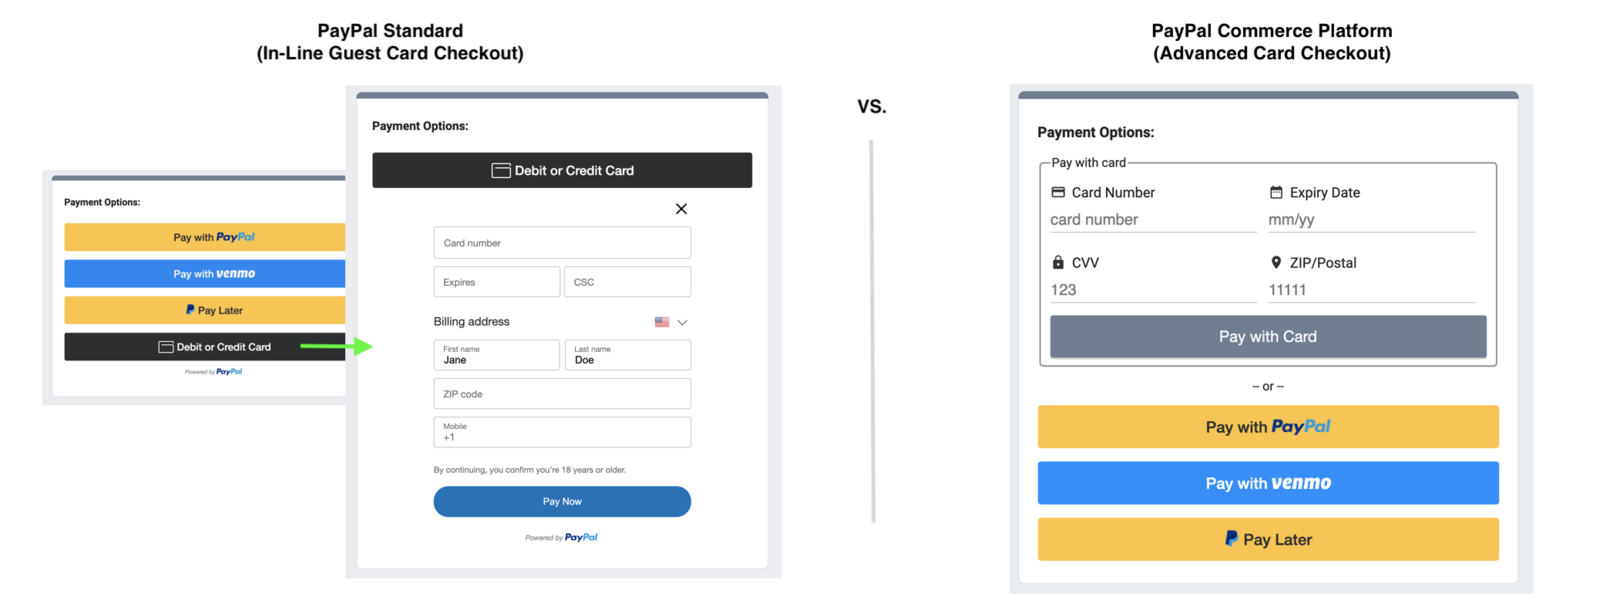 Visual Difference in PayPal Card Checkout Options